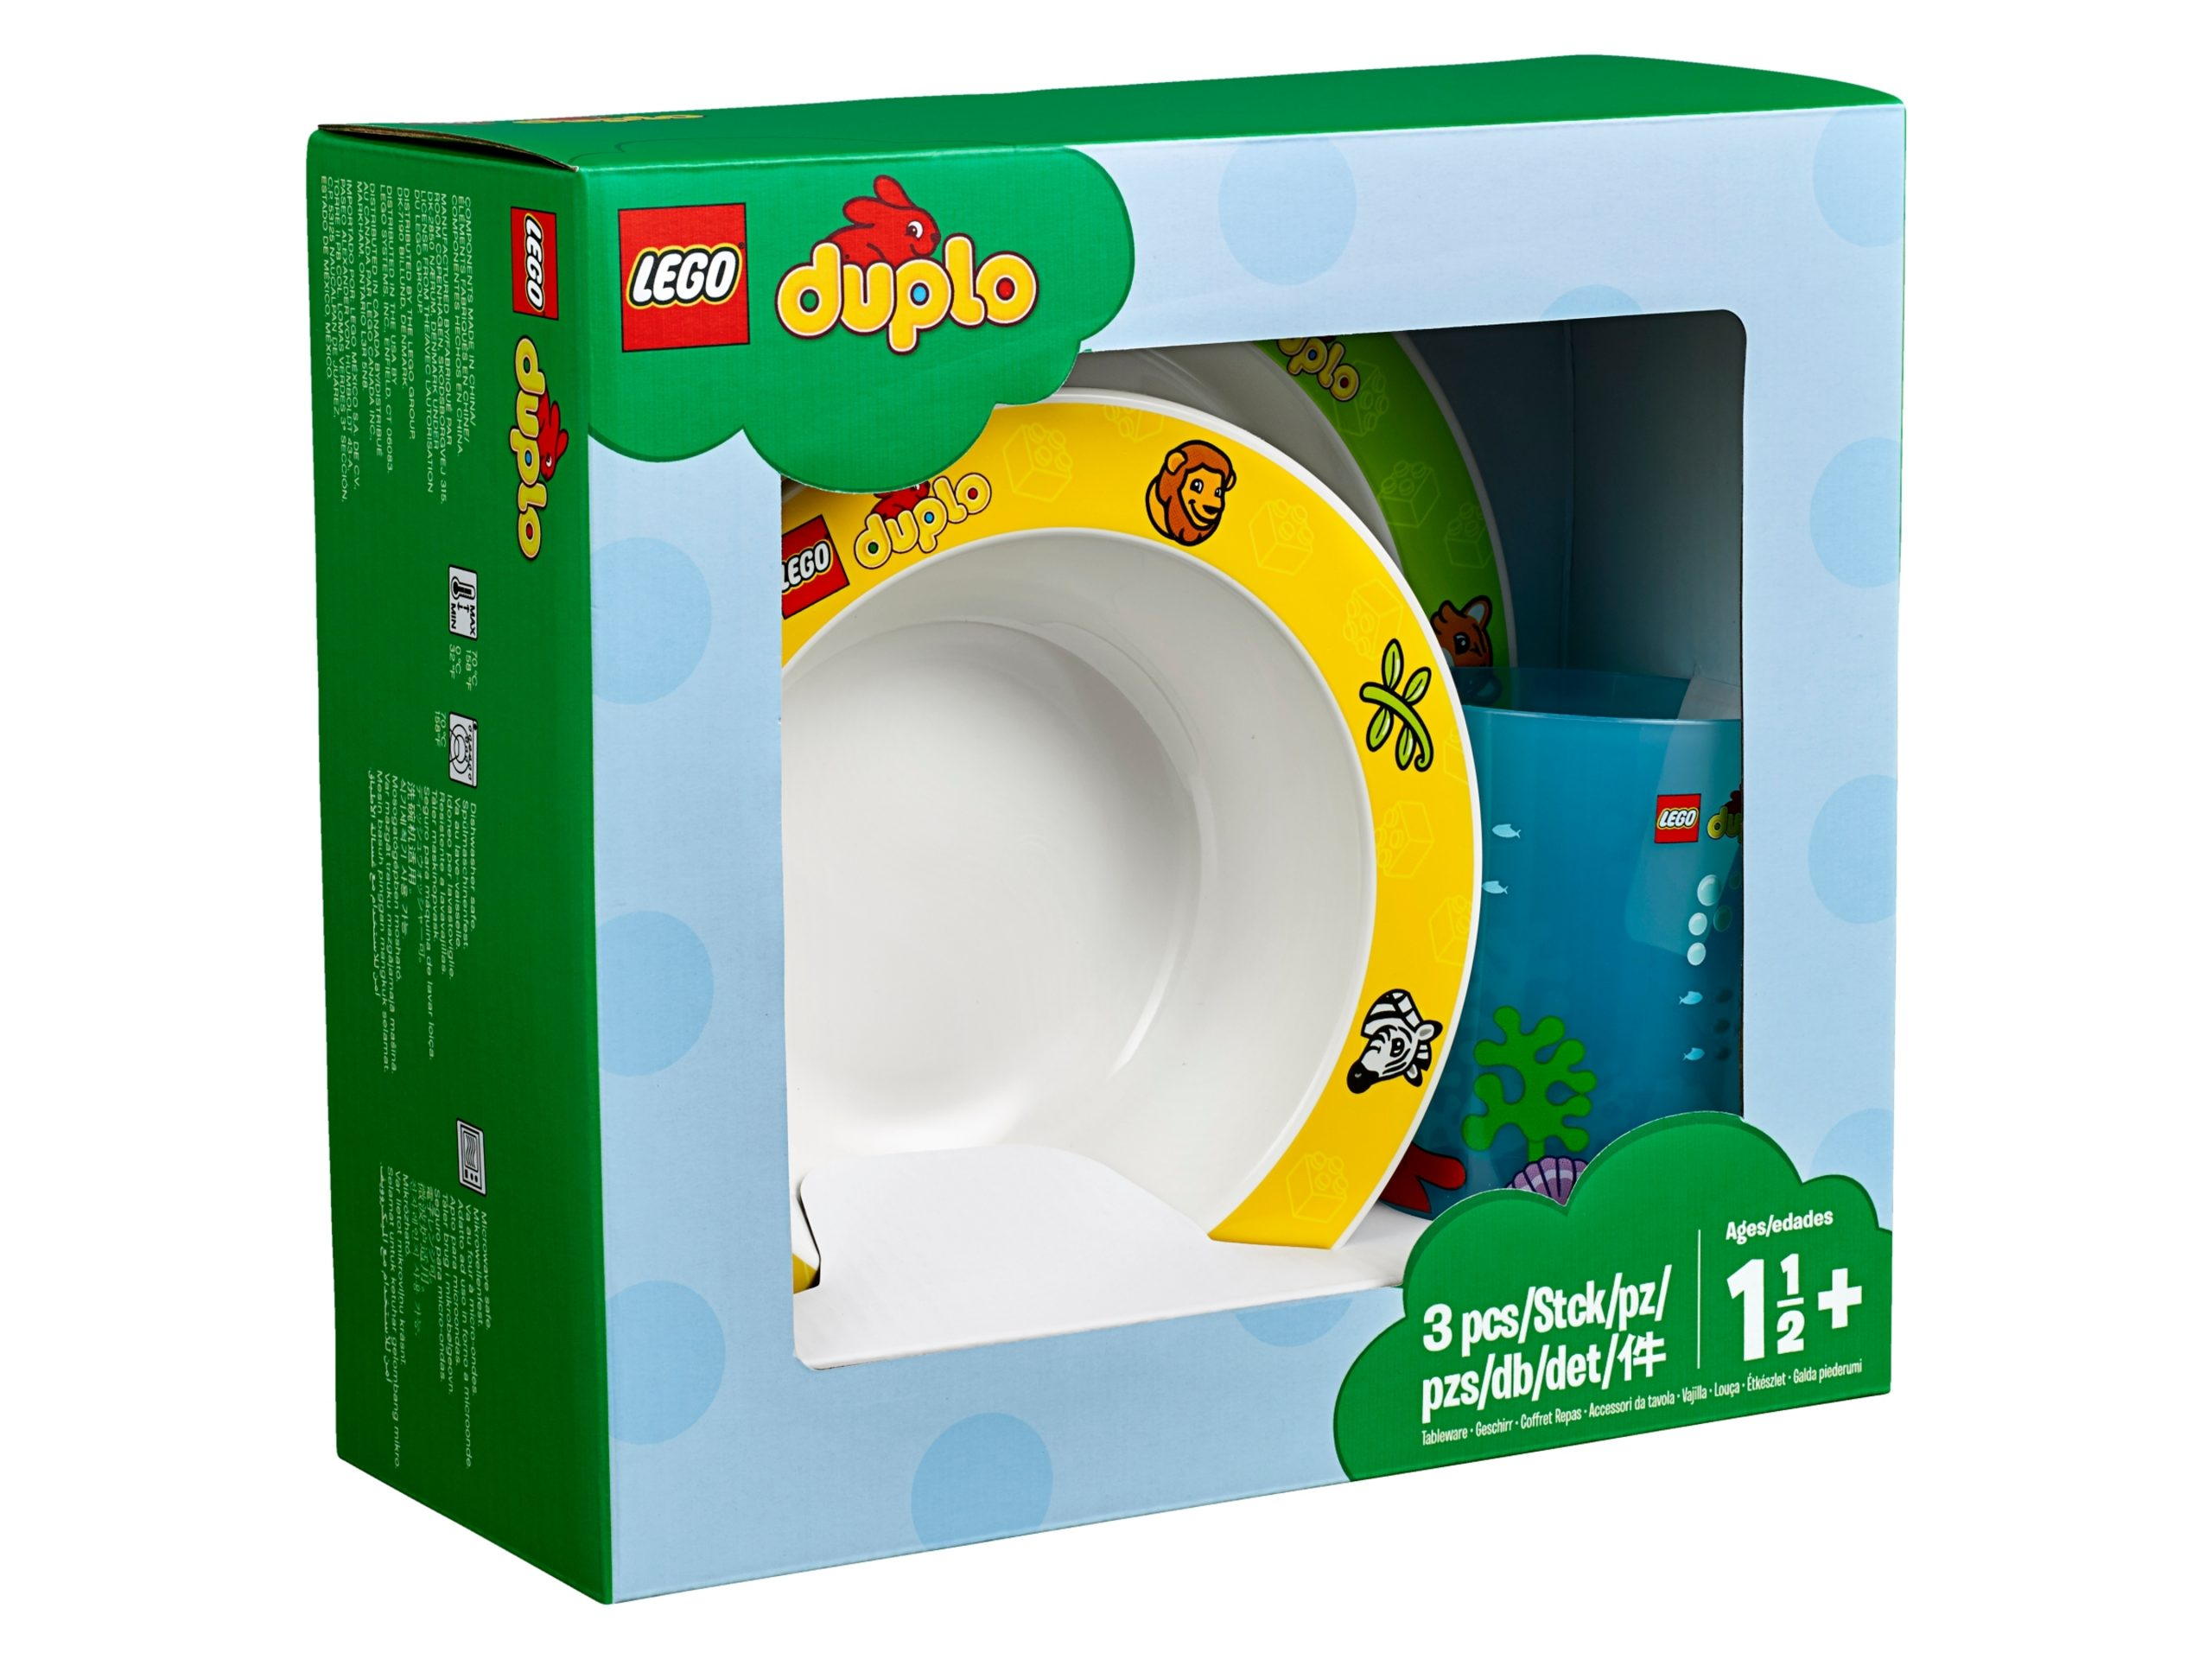 duplo 853920 tableware scaled